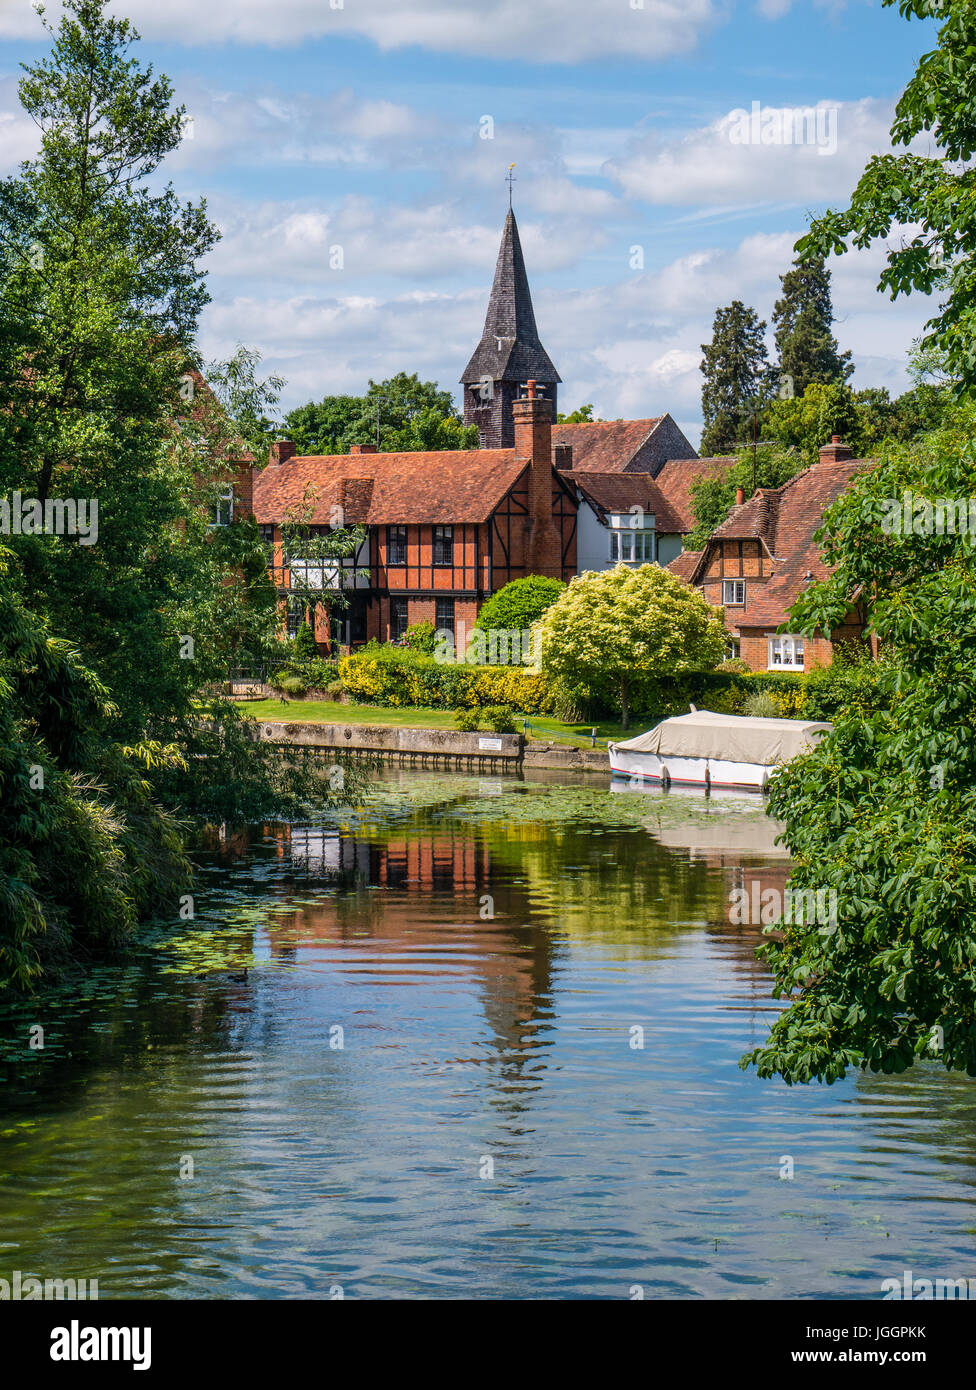 Whitchurch-on-Thames, River Thames, Oxfordshire, England - Stock Image